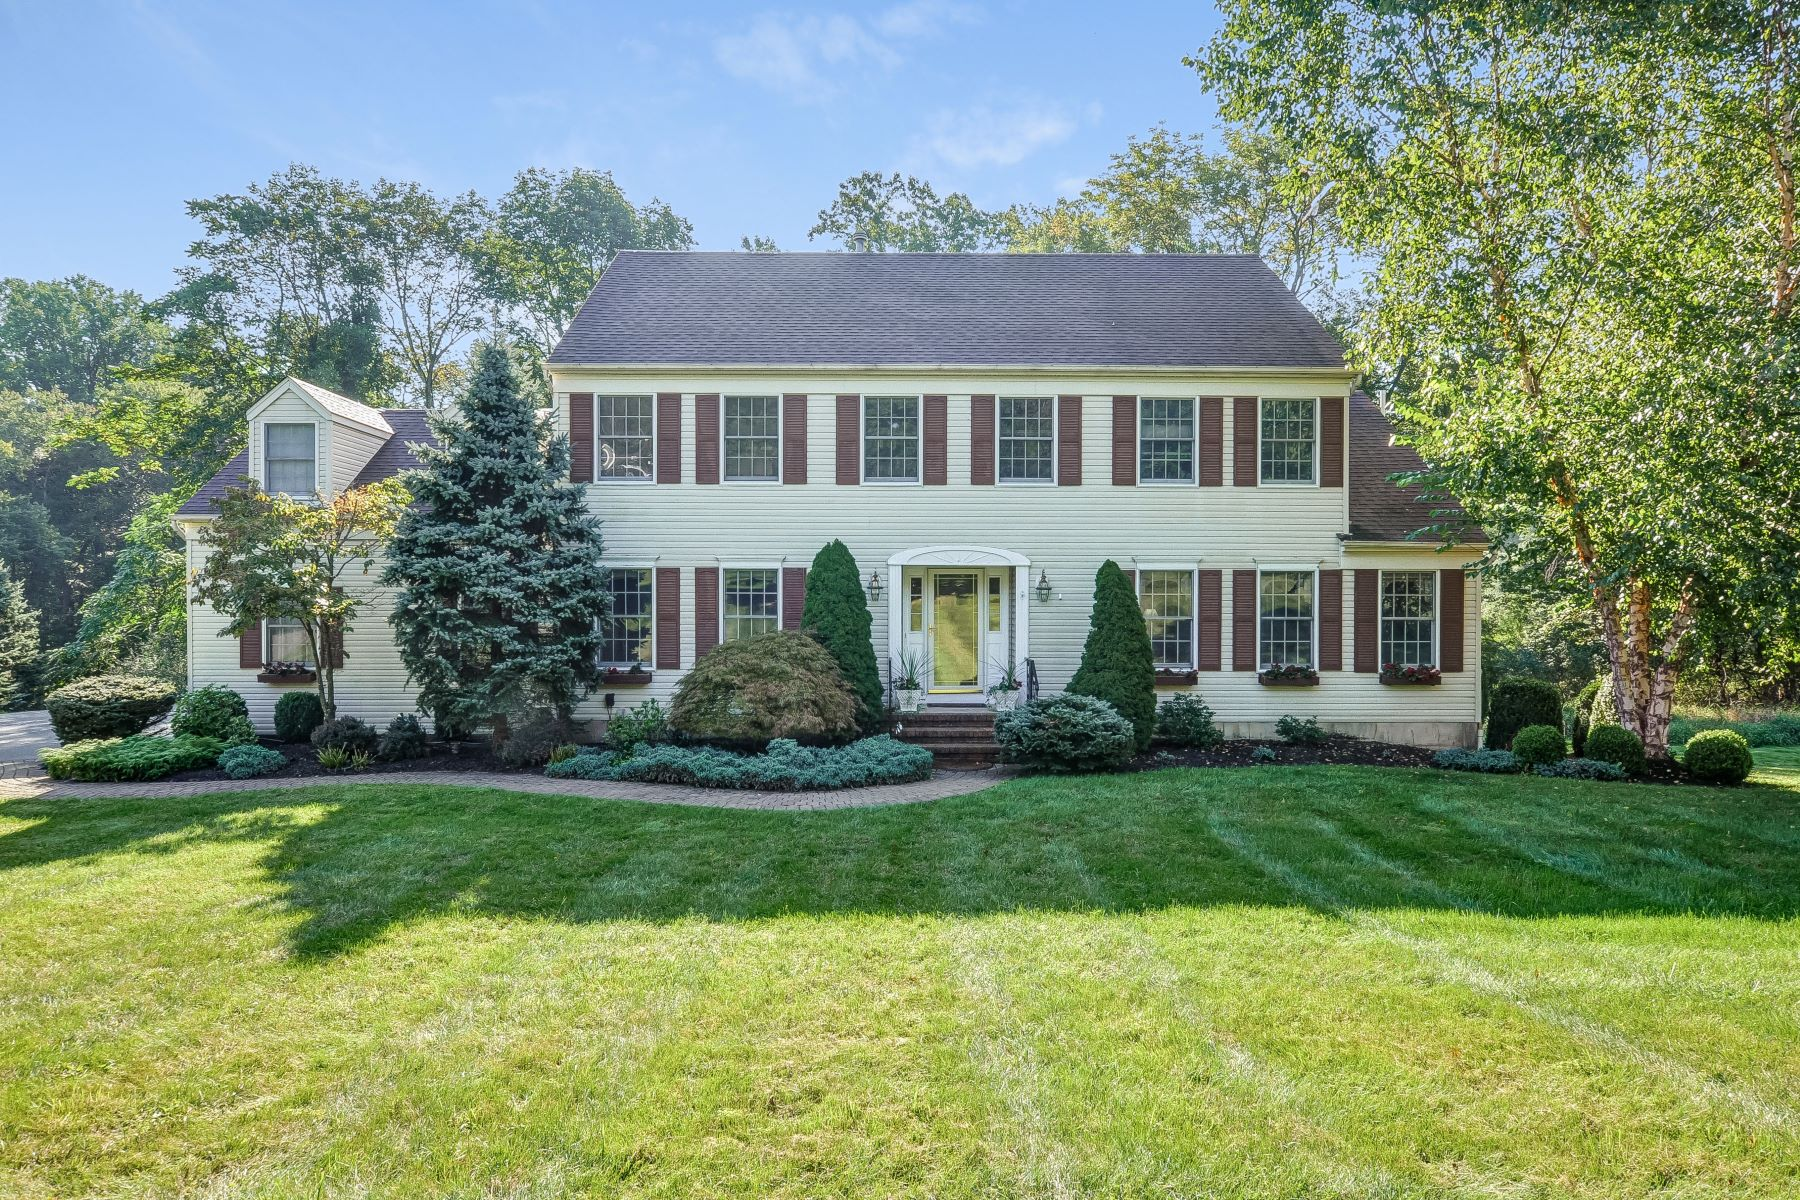 Single Family Home for Sale at Charming Colonial 6 Robin Court, Chester, New Jersey 07930 United States